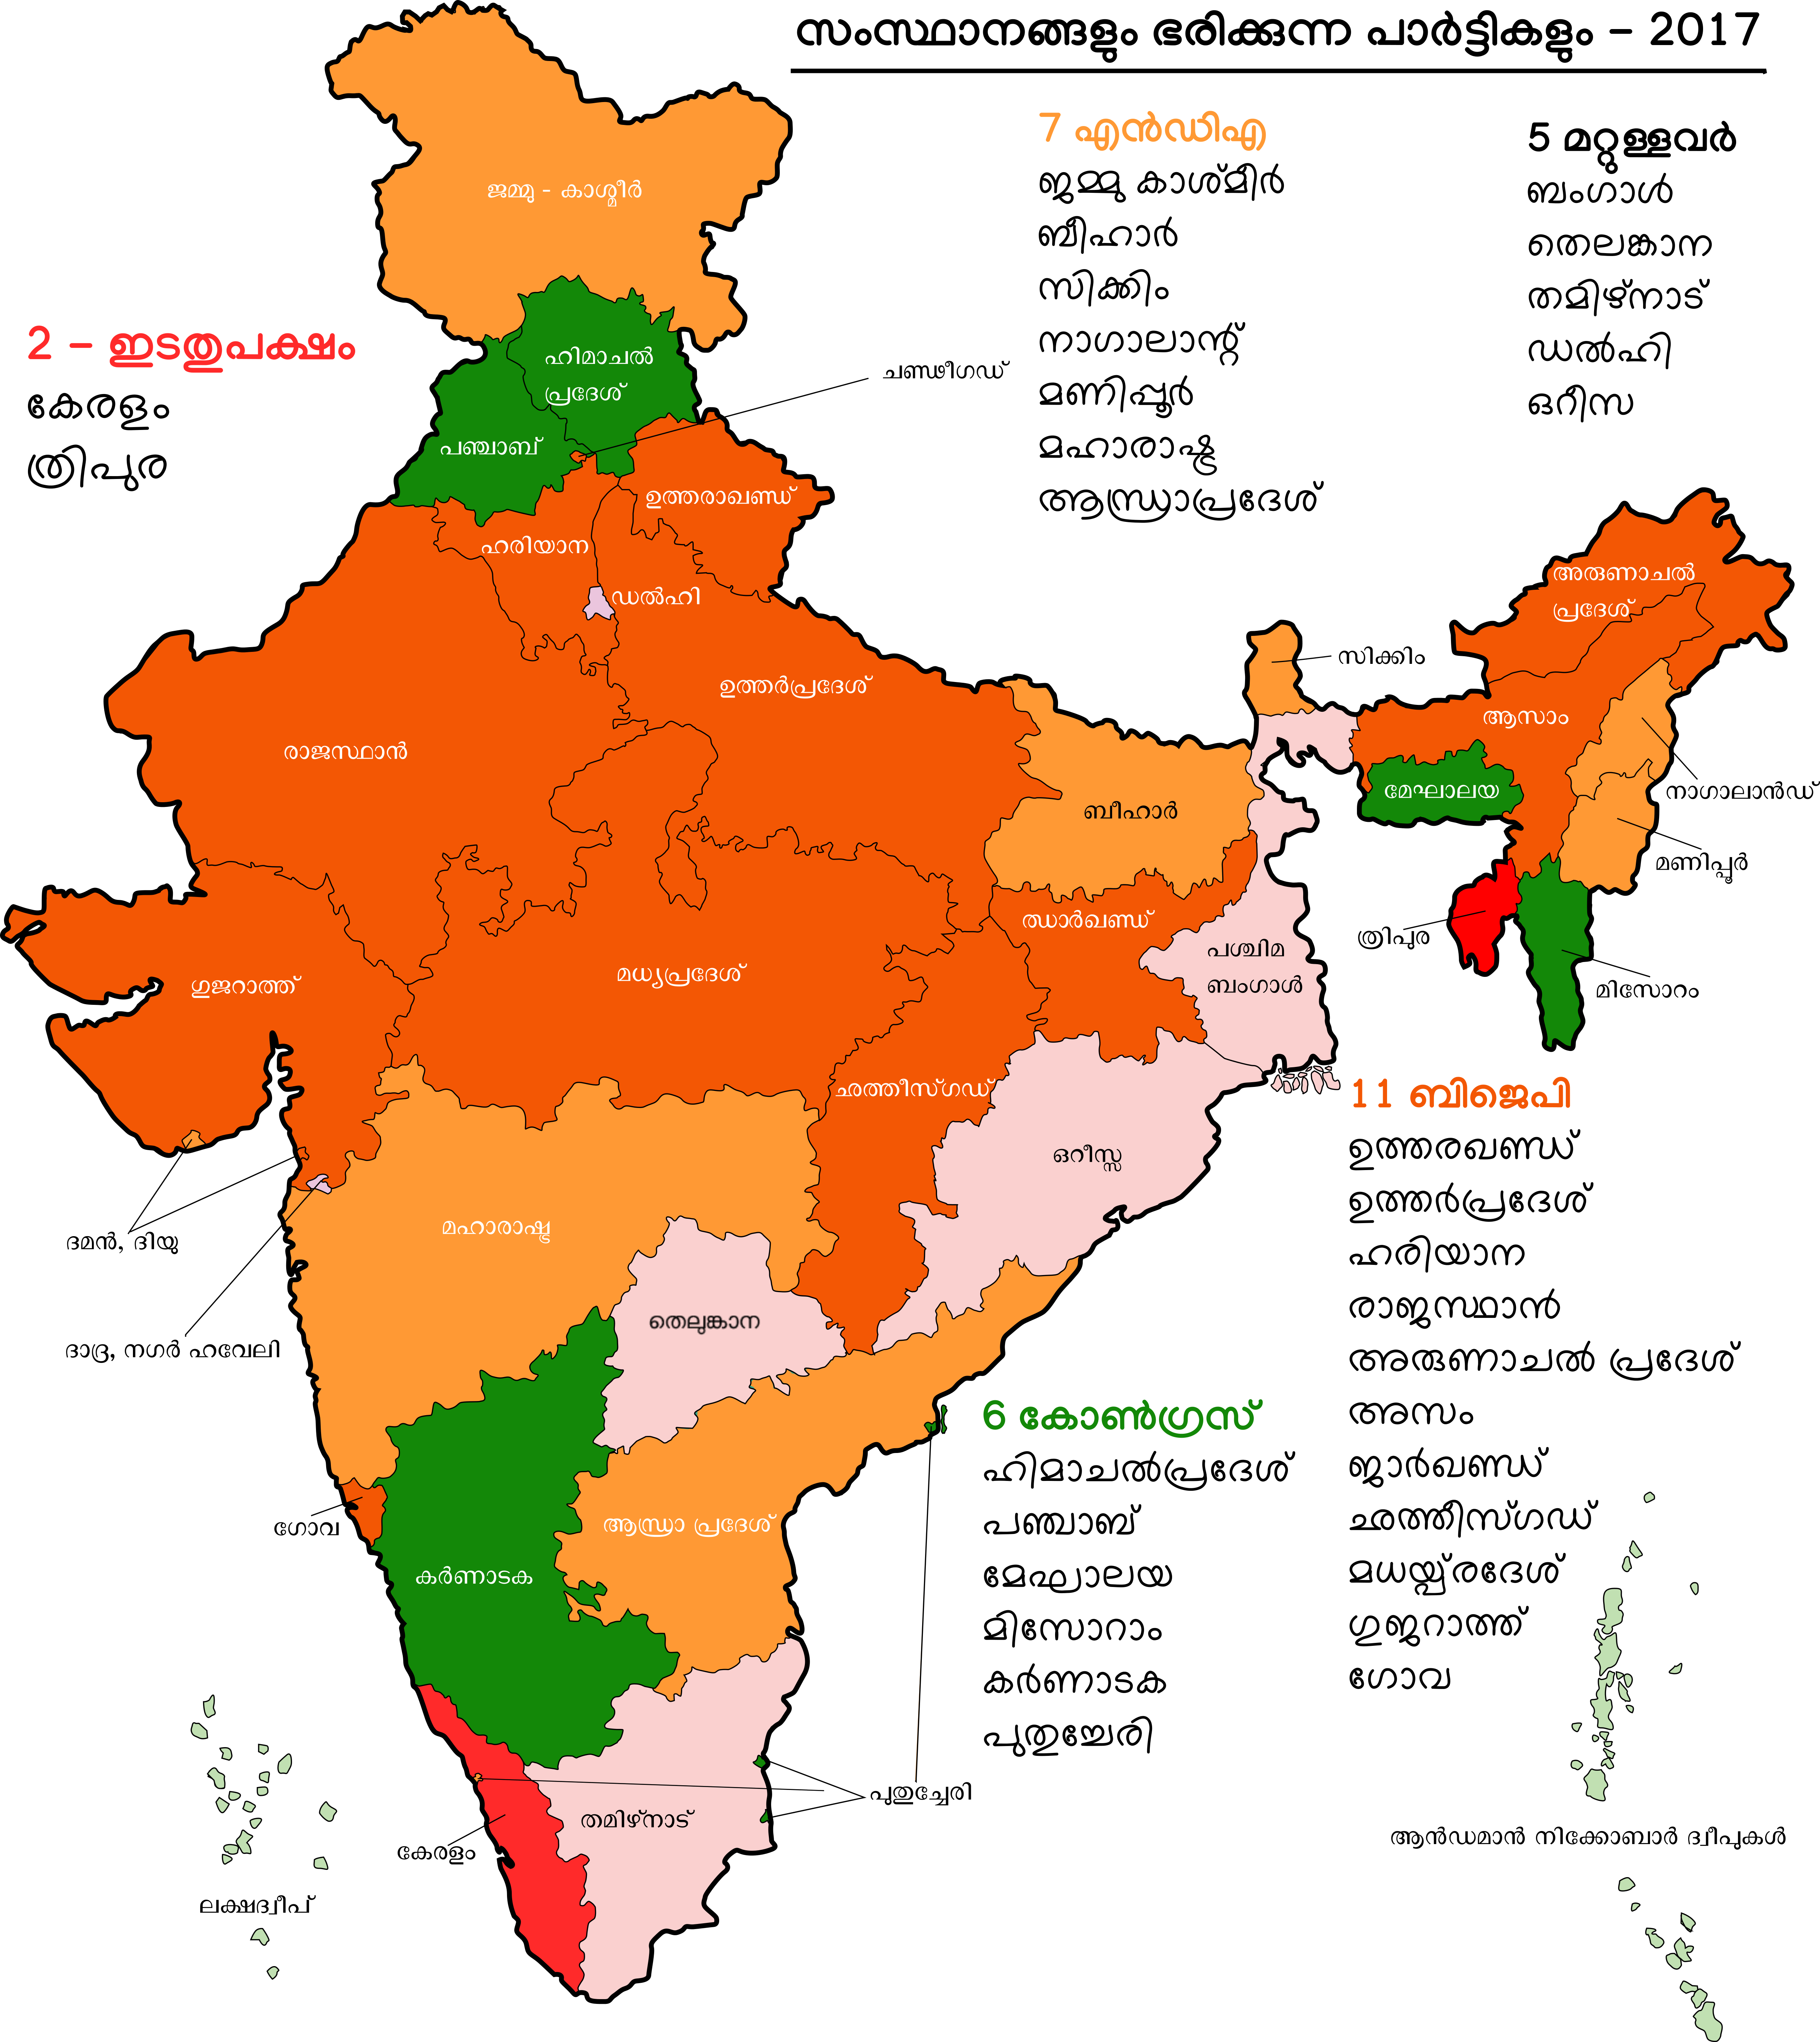 India clipart map bharat. Png fileindiamapmlpoliticalpartiespng wikimedia commons